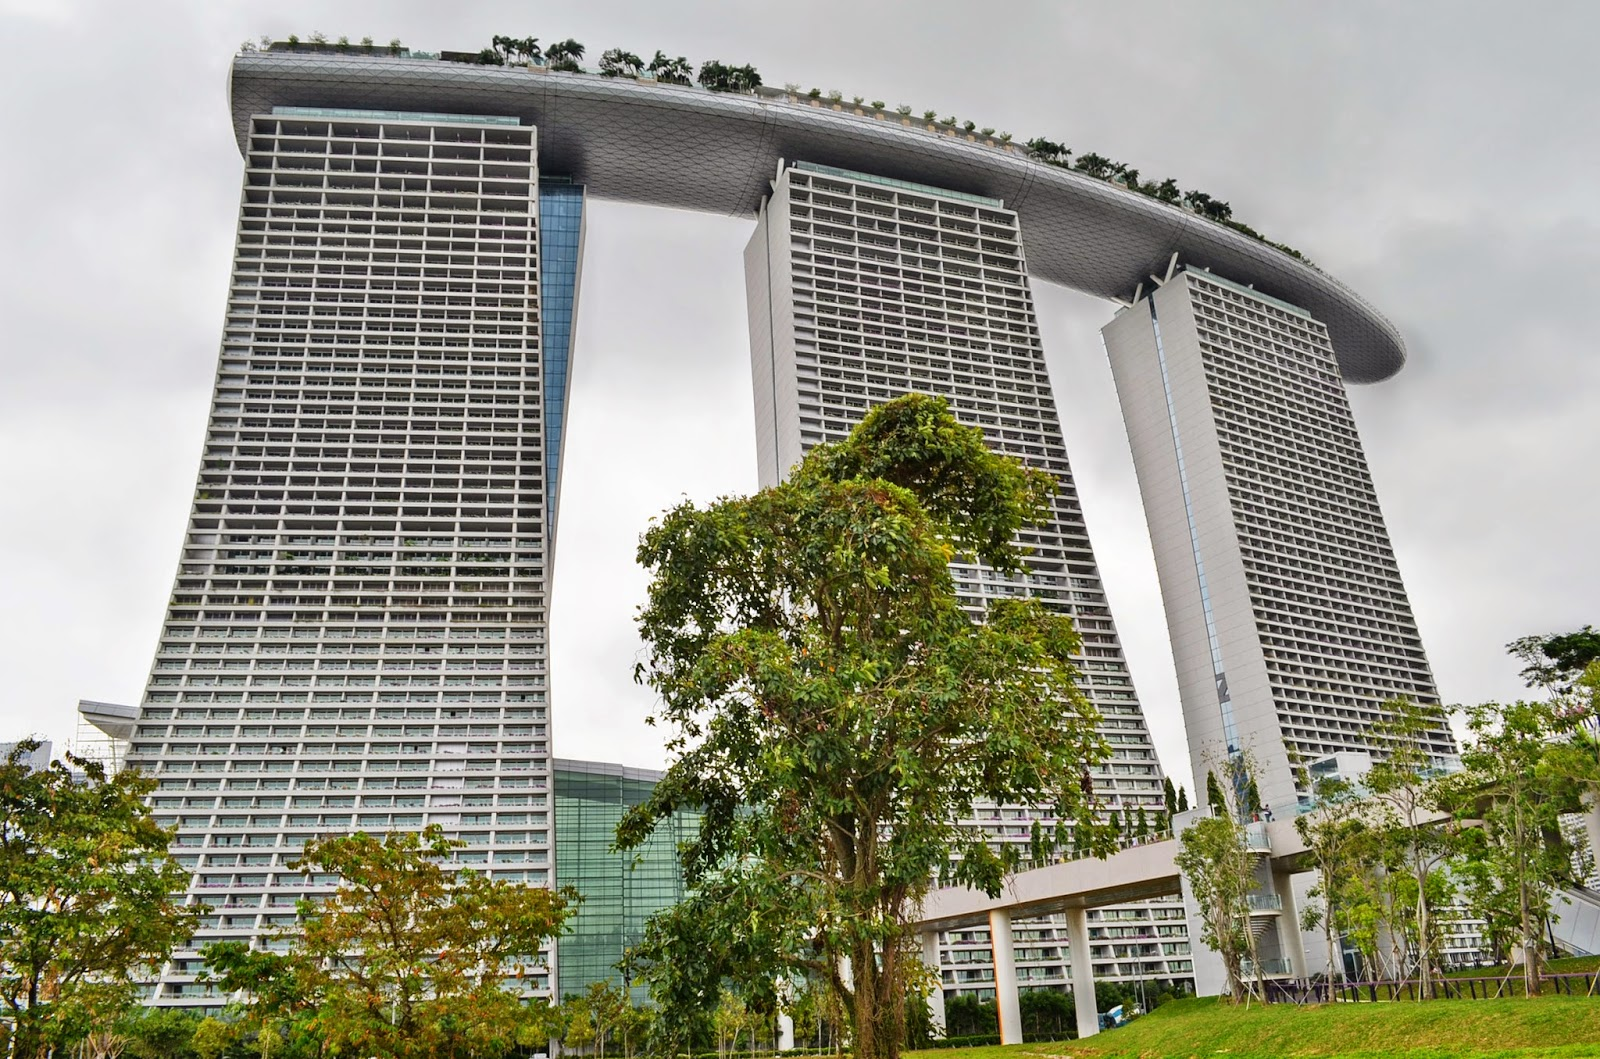 Marina Bay Sands resort opens in Singapore | Daily Mail Online